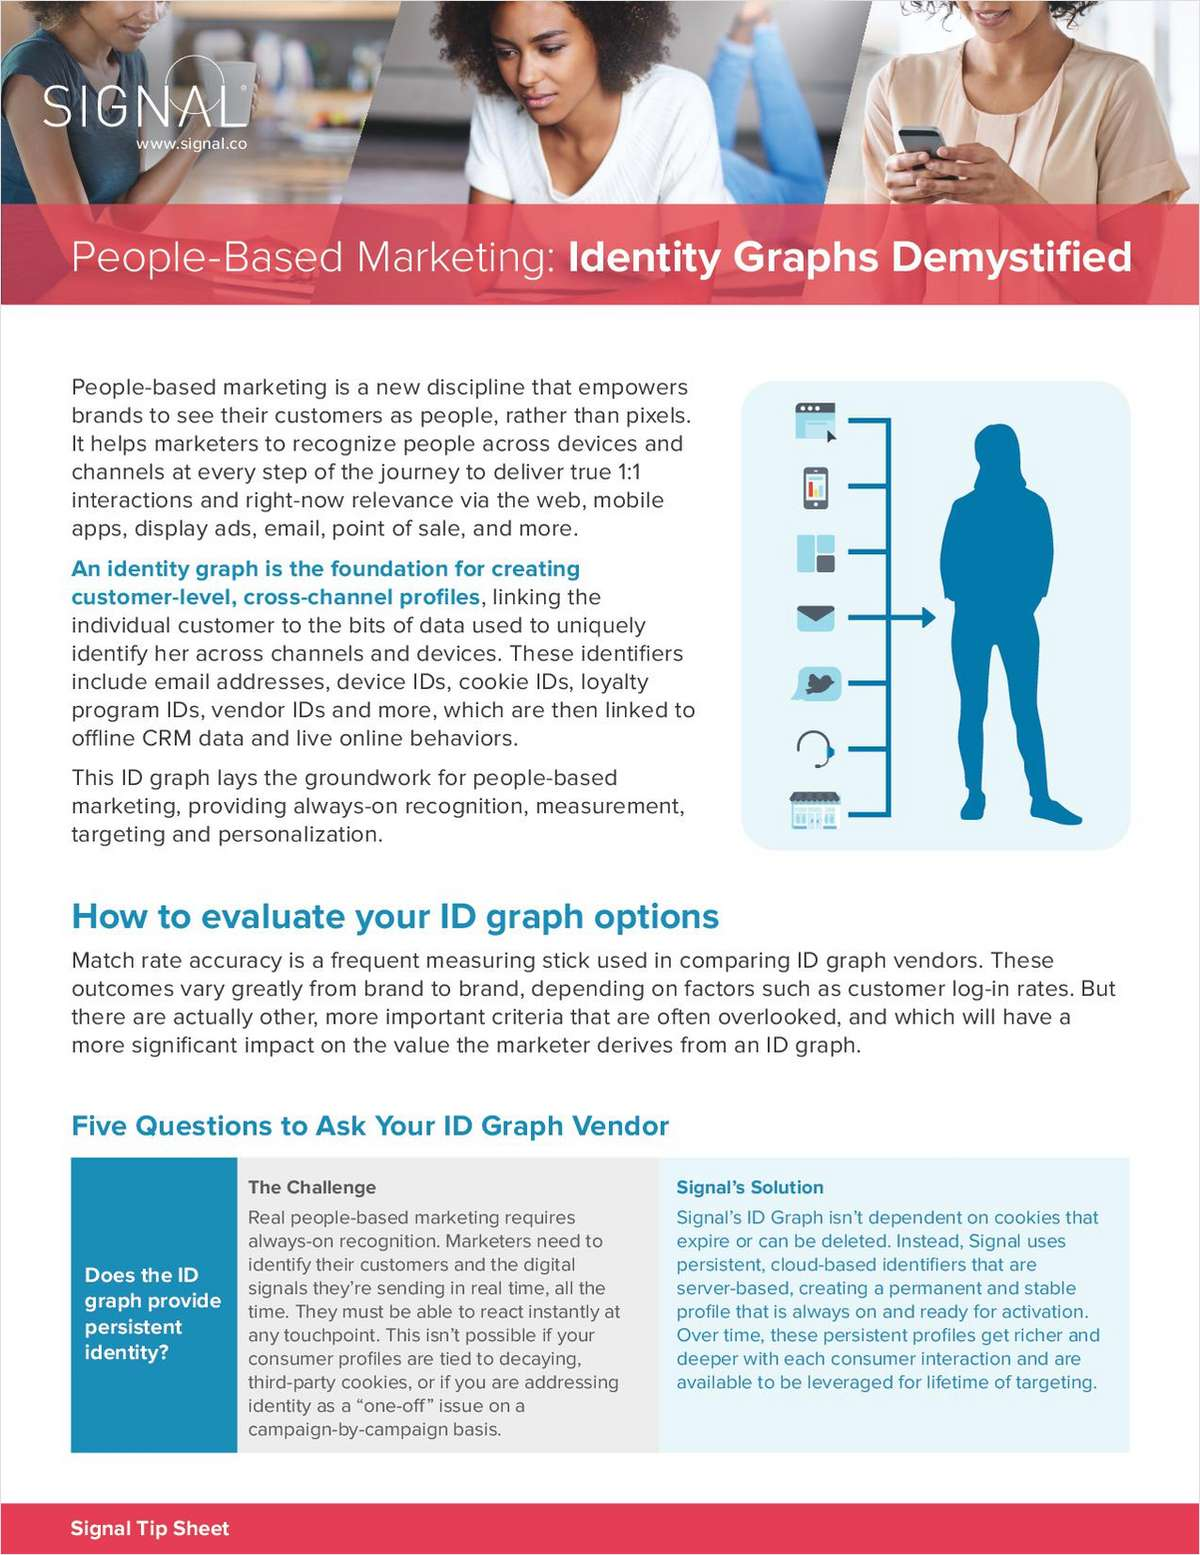 Identity Graphs Demystified